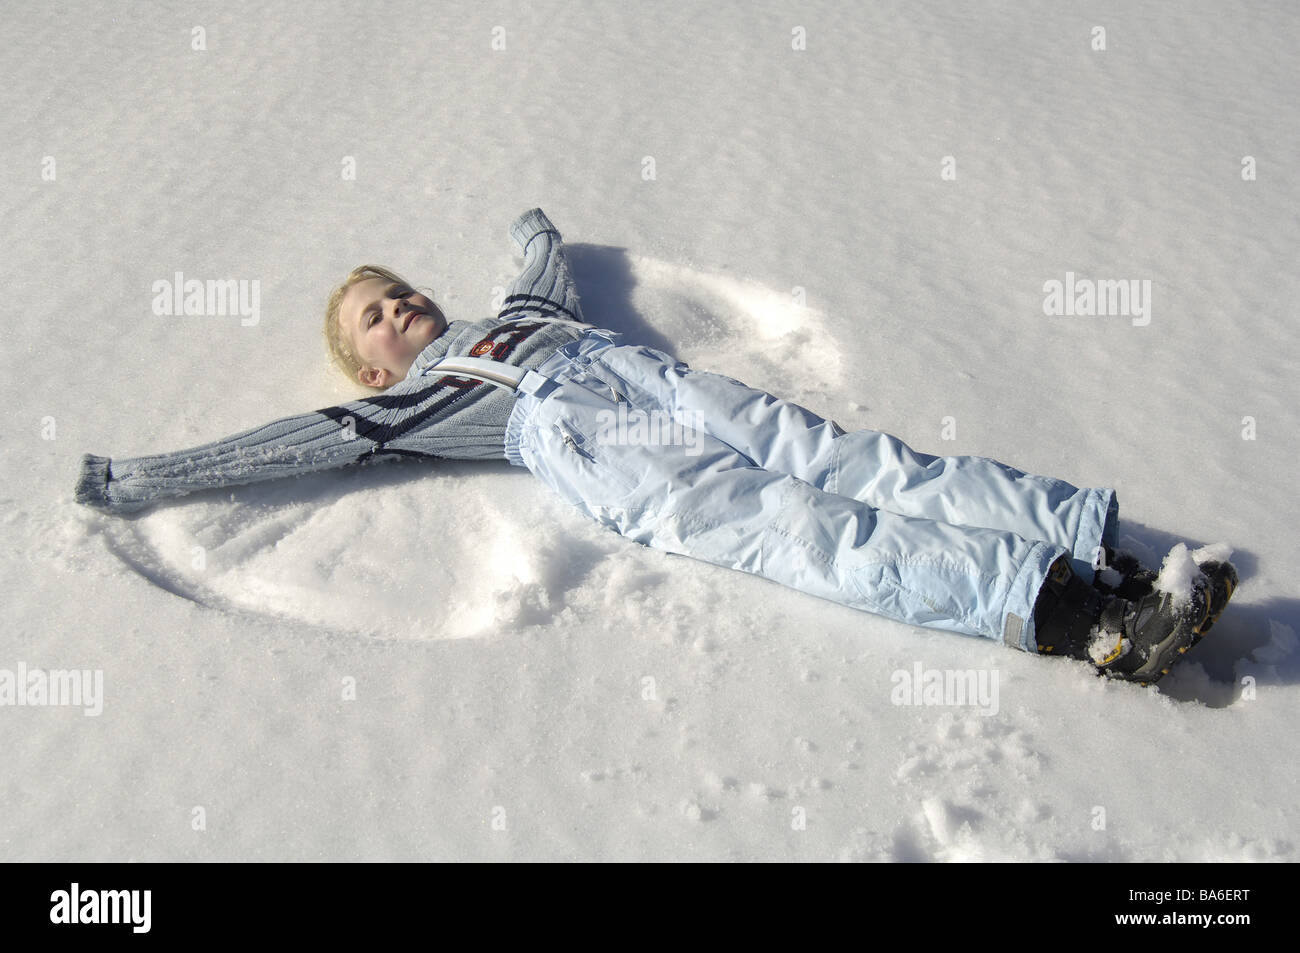 Lies child girls winter-clothing cheerfully snow mark 'angels' winters winter-landscape vacation vacation - Stock Image